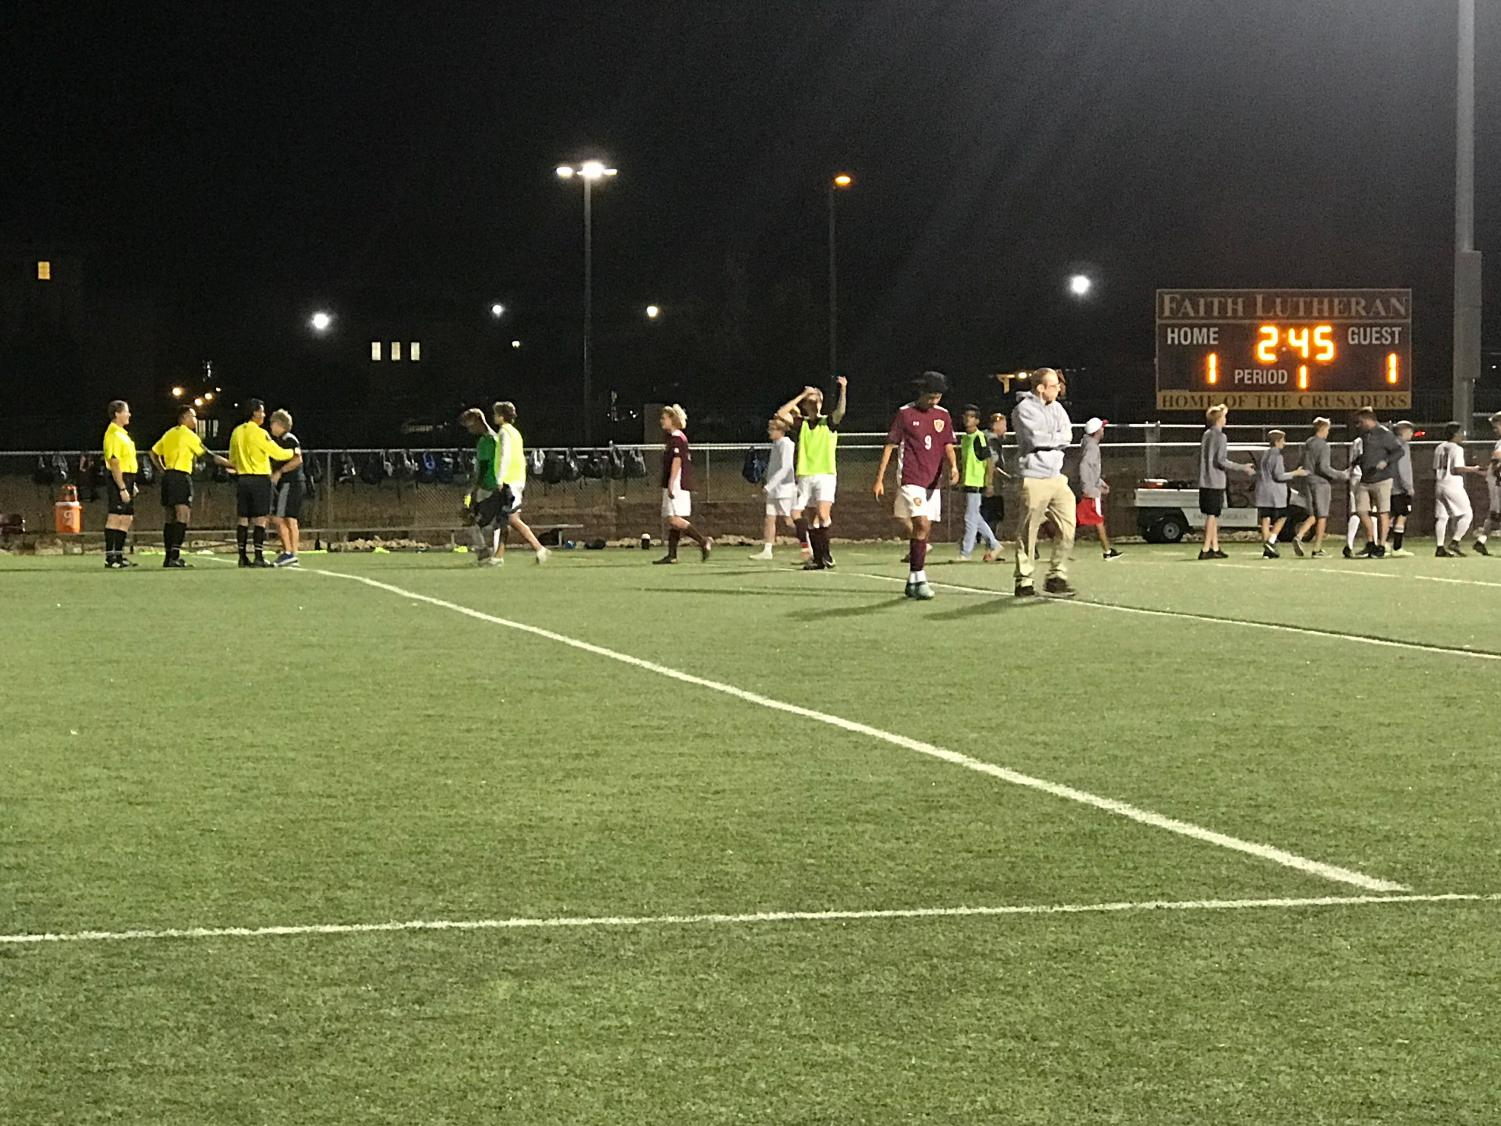 Both teams walk off the field after a match that took overtime to decide a victor.